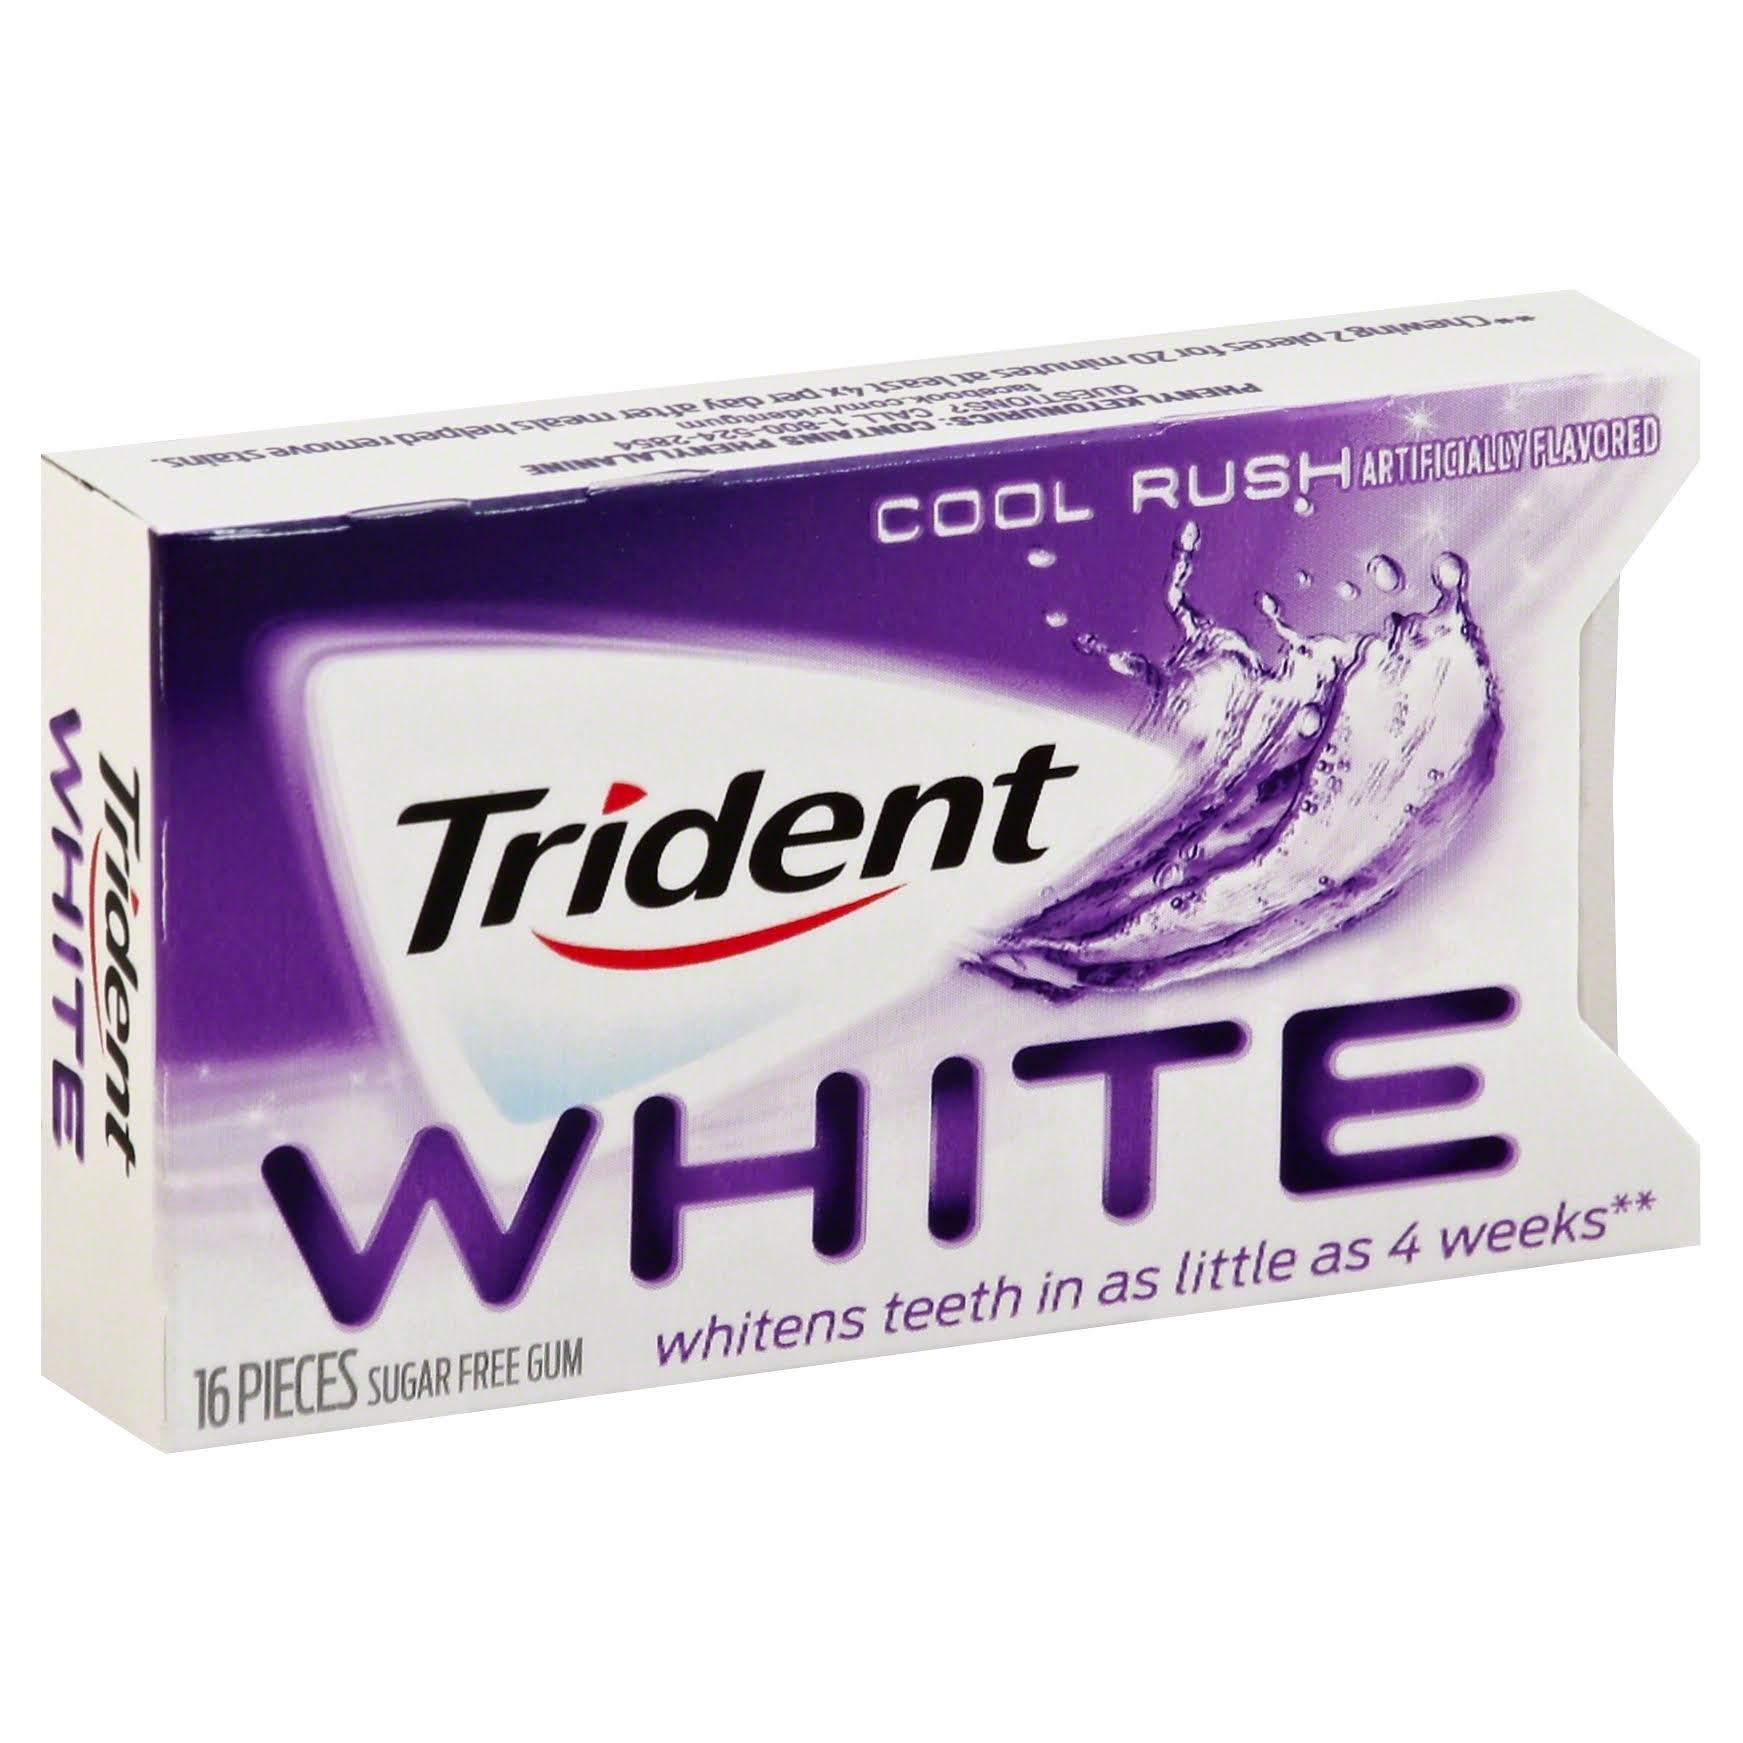 Trident White Sugar Free Gum - Cool Rush